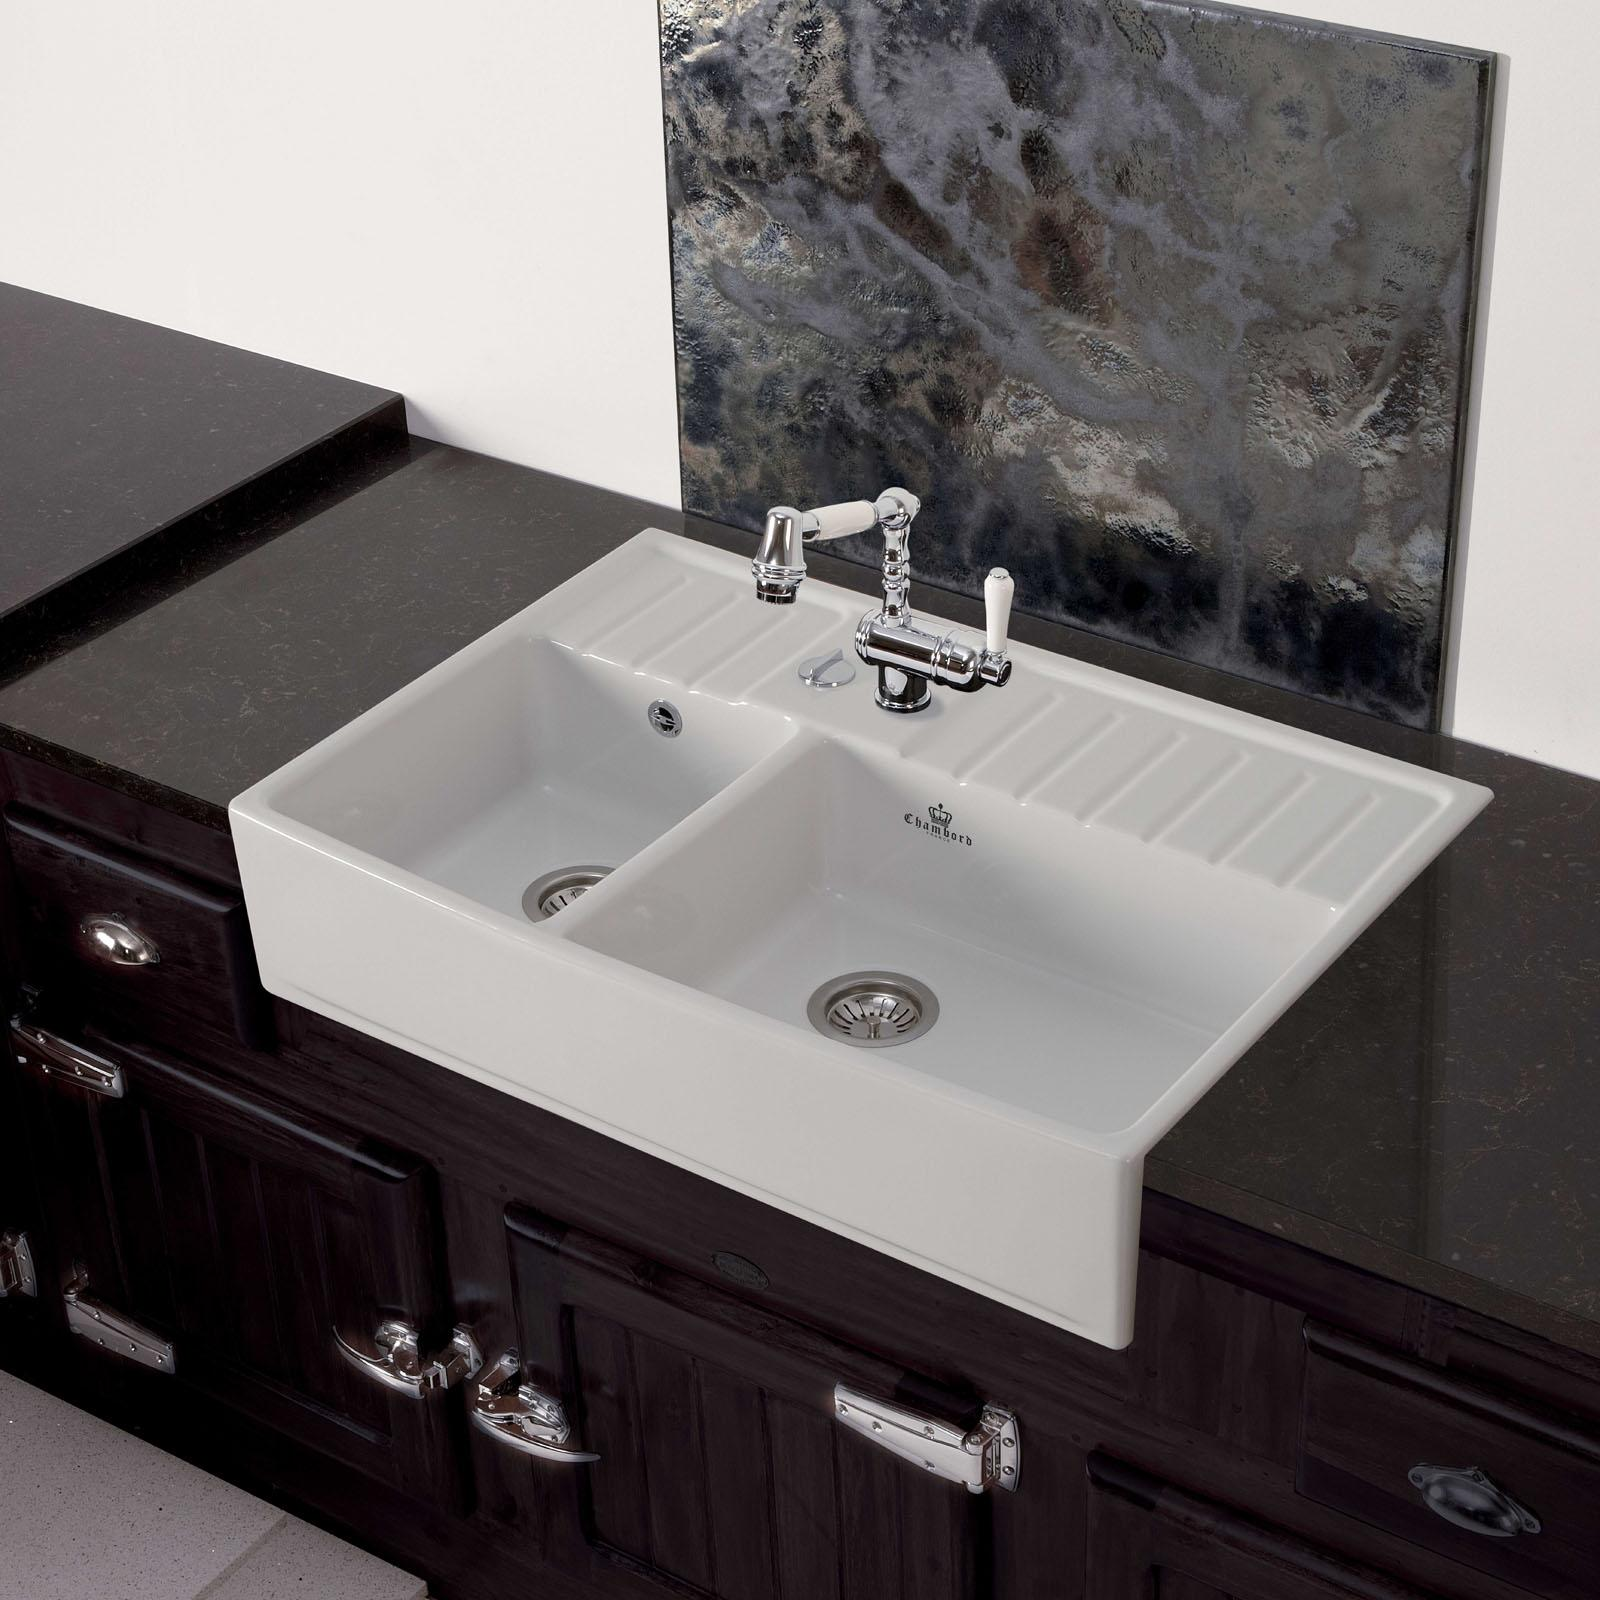 High-quality sink Clotaire III - one and a half bowl, ceramic - ambience 1